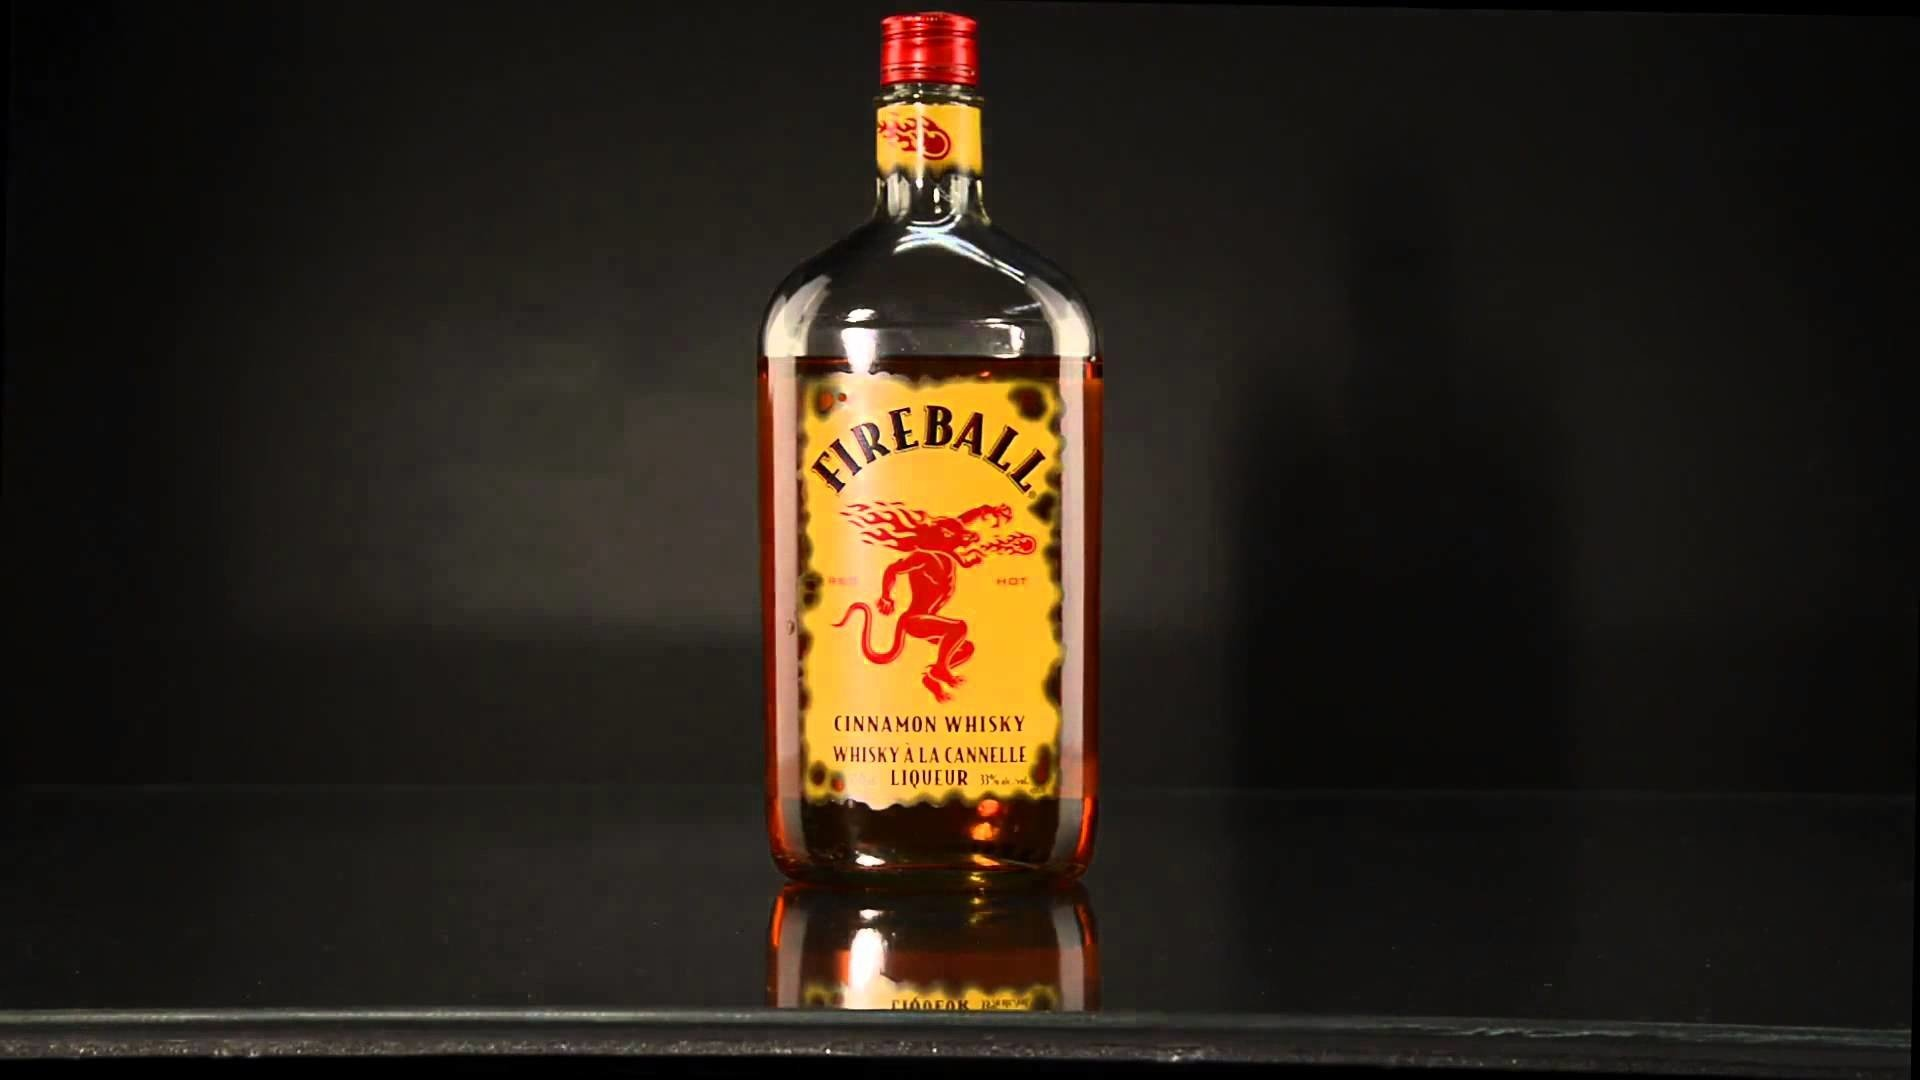 Fireball Wallpapers 46 images 1920x1080